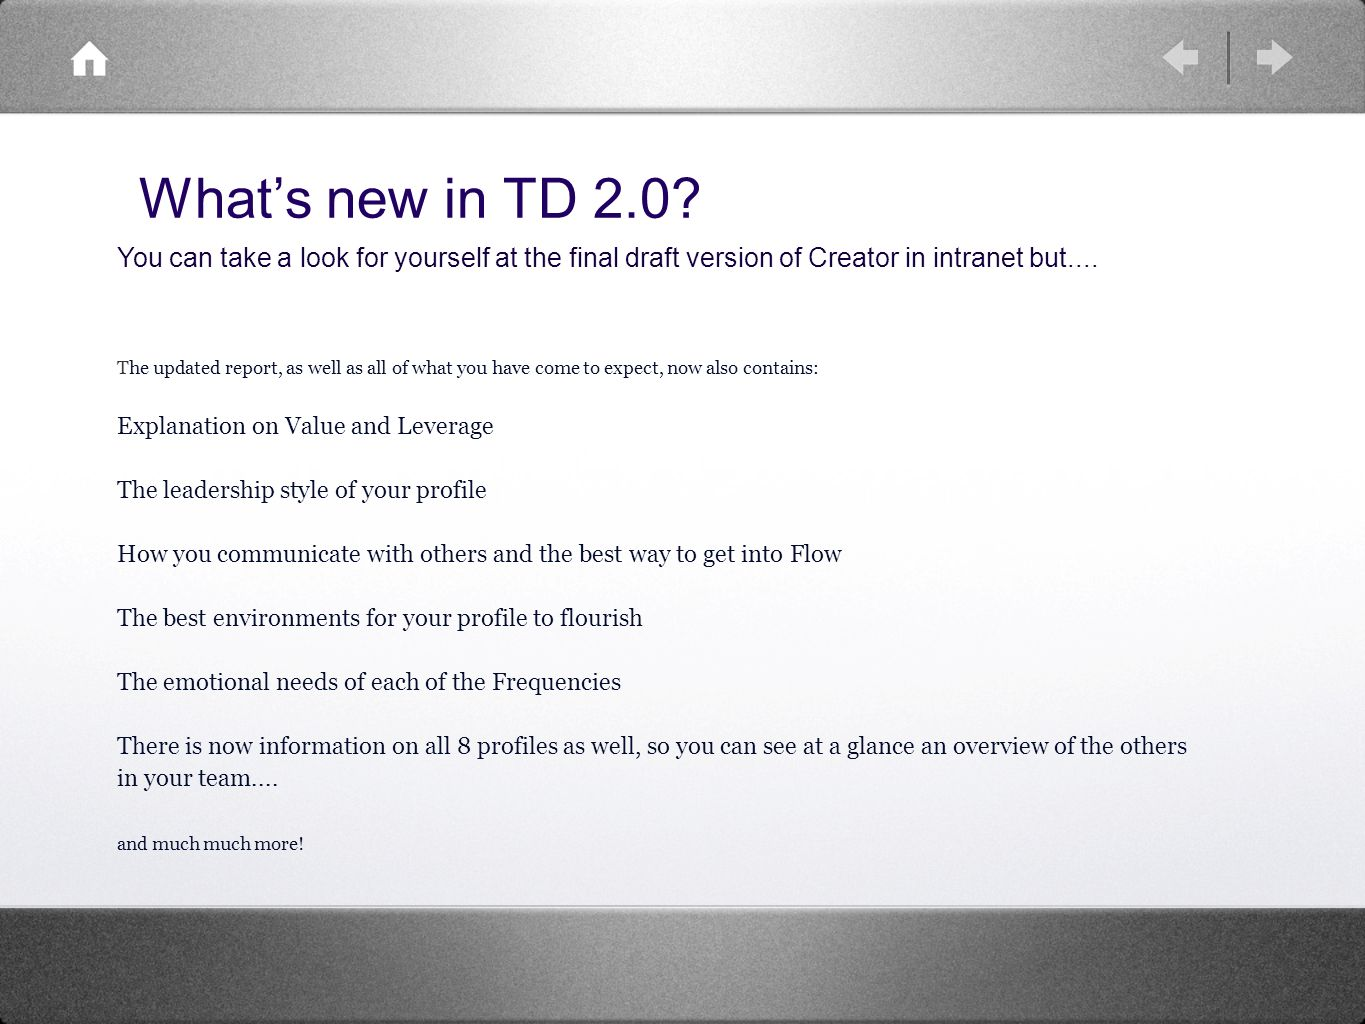 Whats new in TD 2.0.